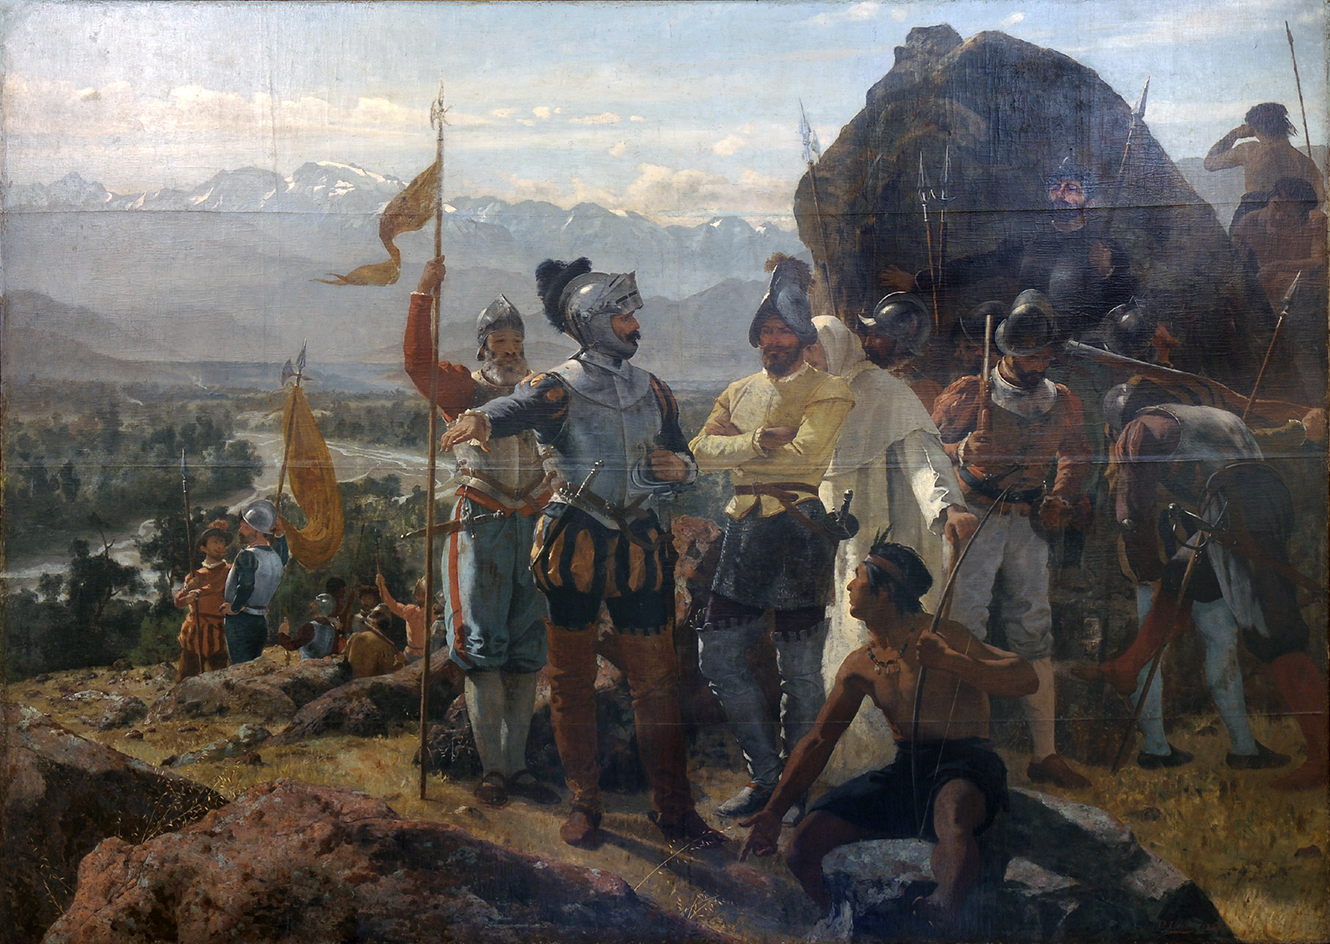 the conquistadors What arguments did bartolome de las casas make in favor of more humane treatment of native americans as he exposed the atrocities of the spanish conquistadors in hispaniola.